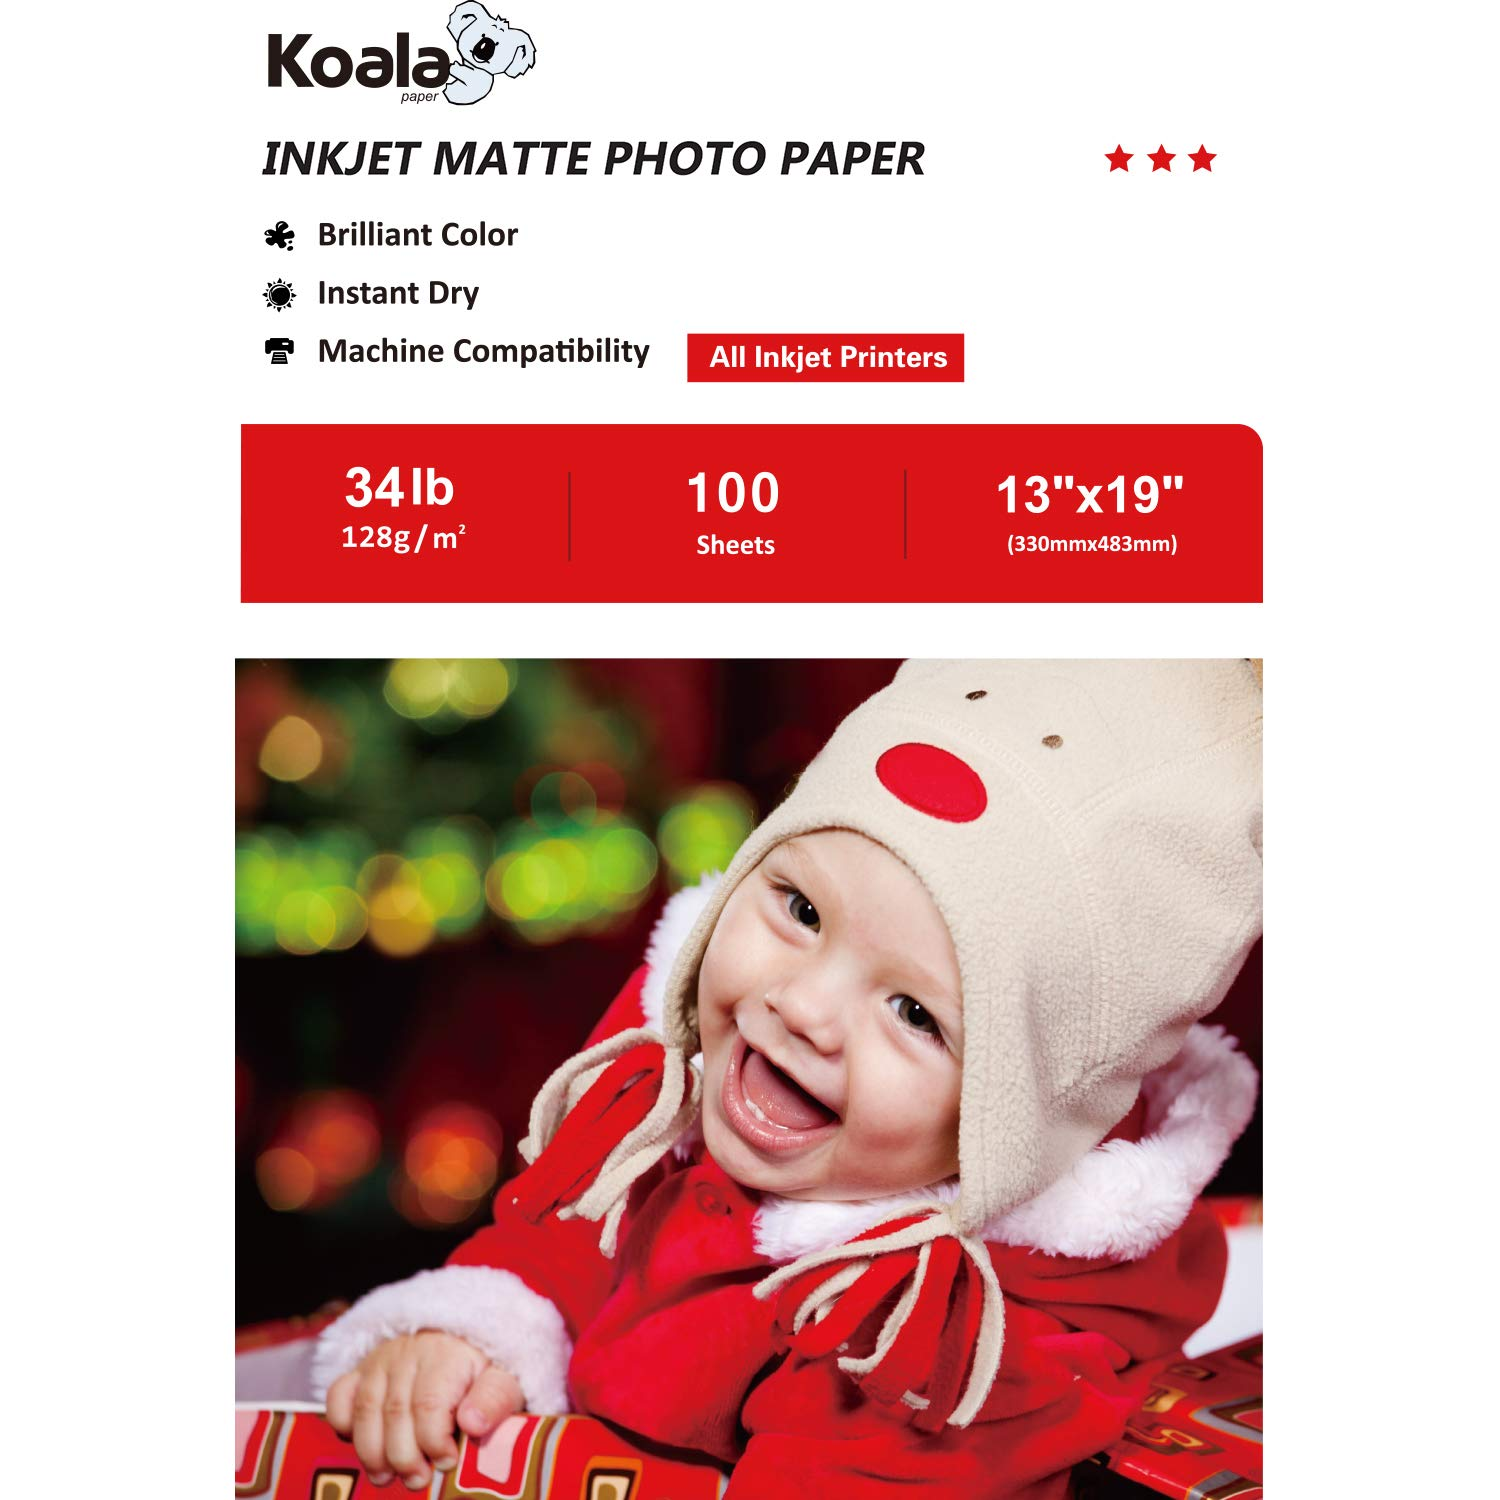 Koala Photo Paper 13x19 Inches Matte Photo Paper 100 Sheets 128gsm Compatible with All Inkjet Printer